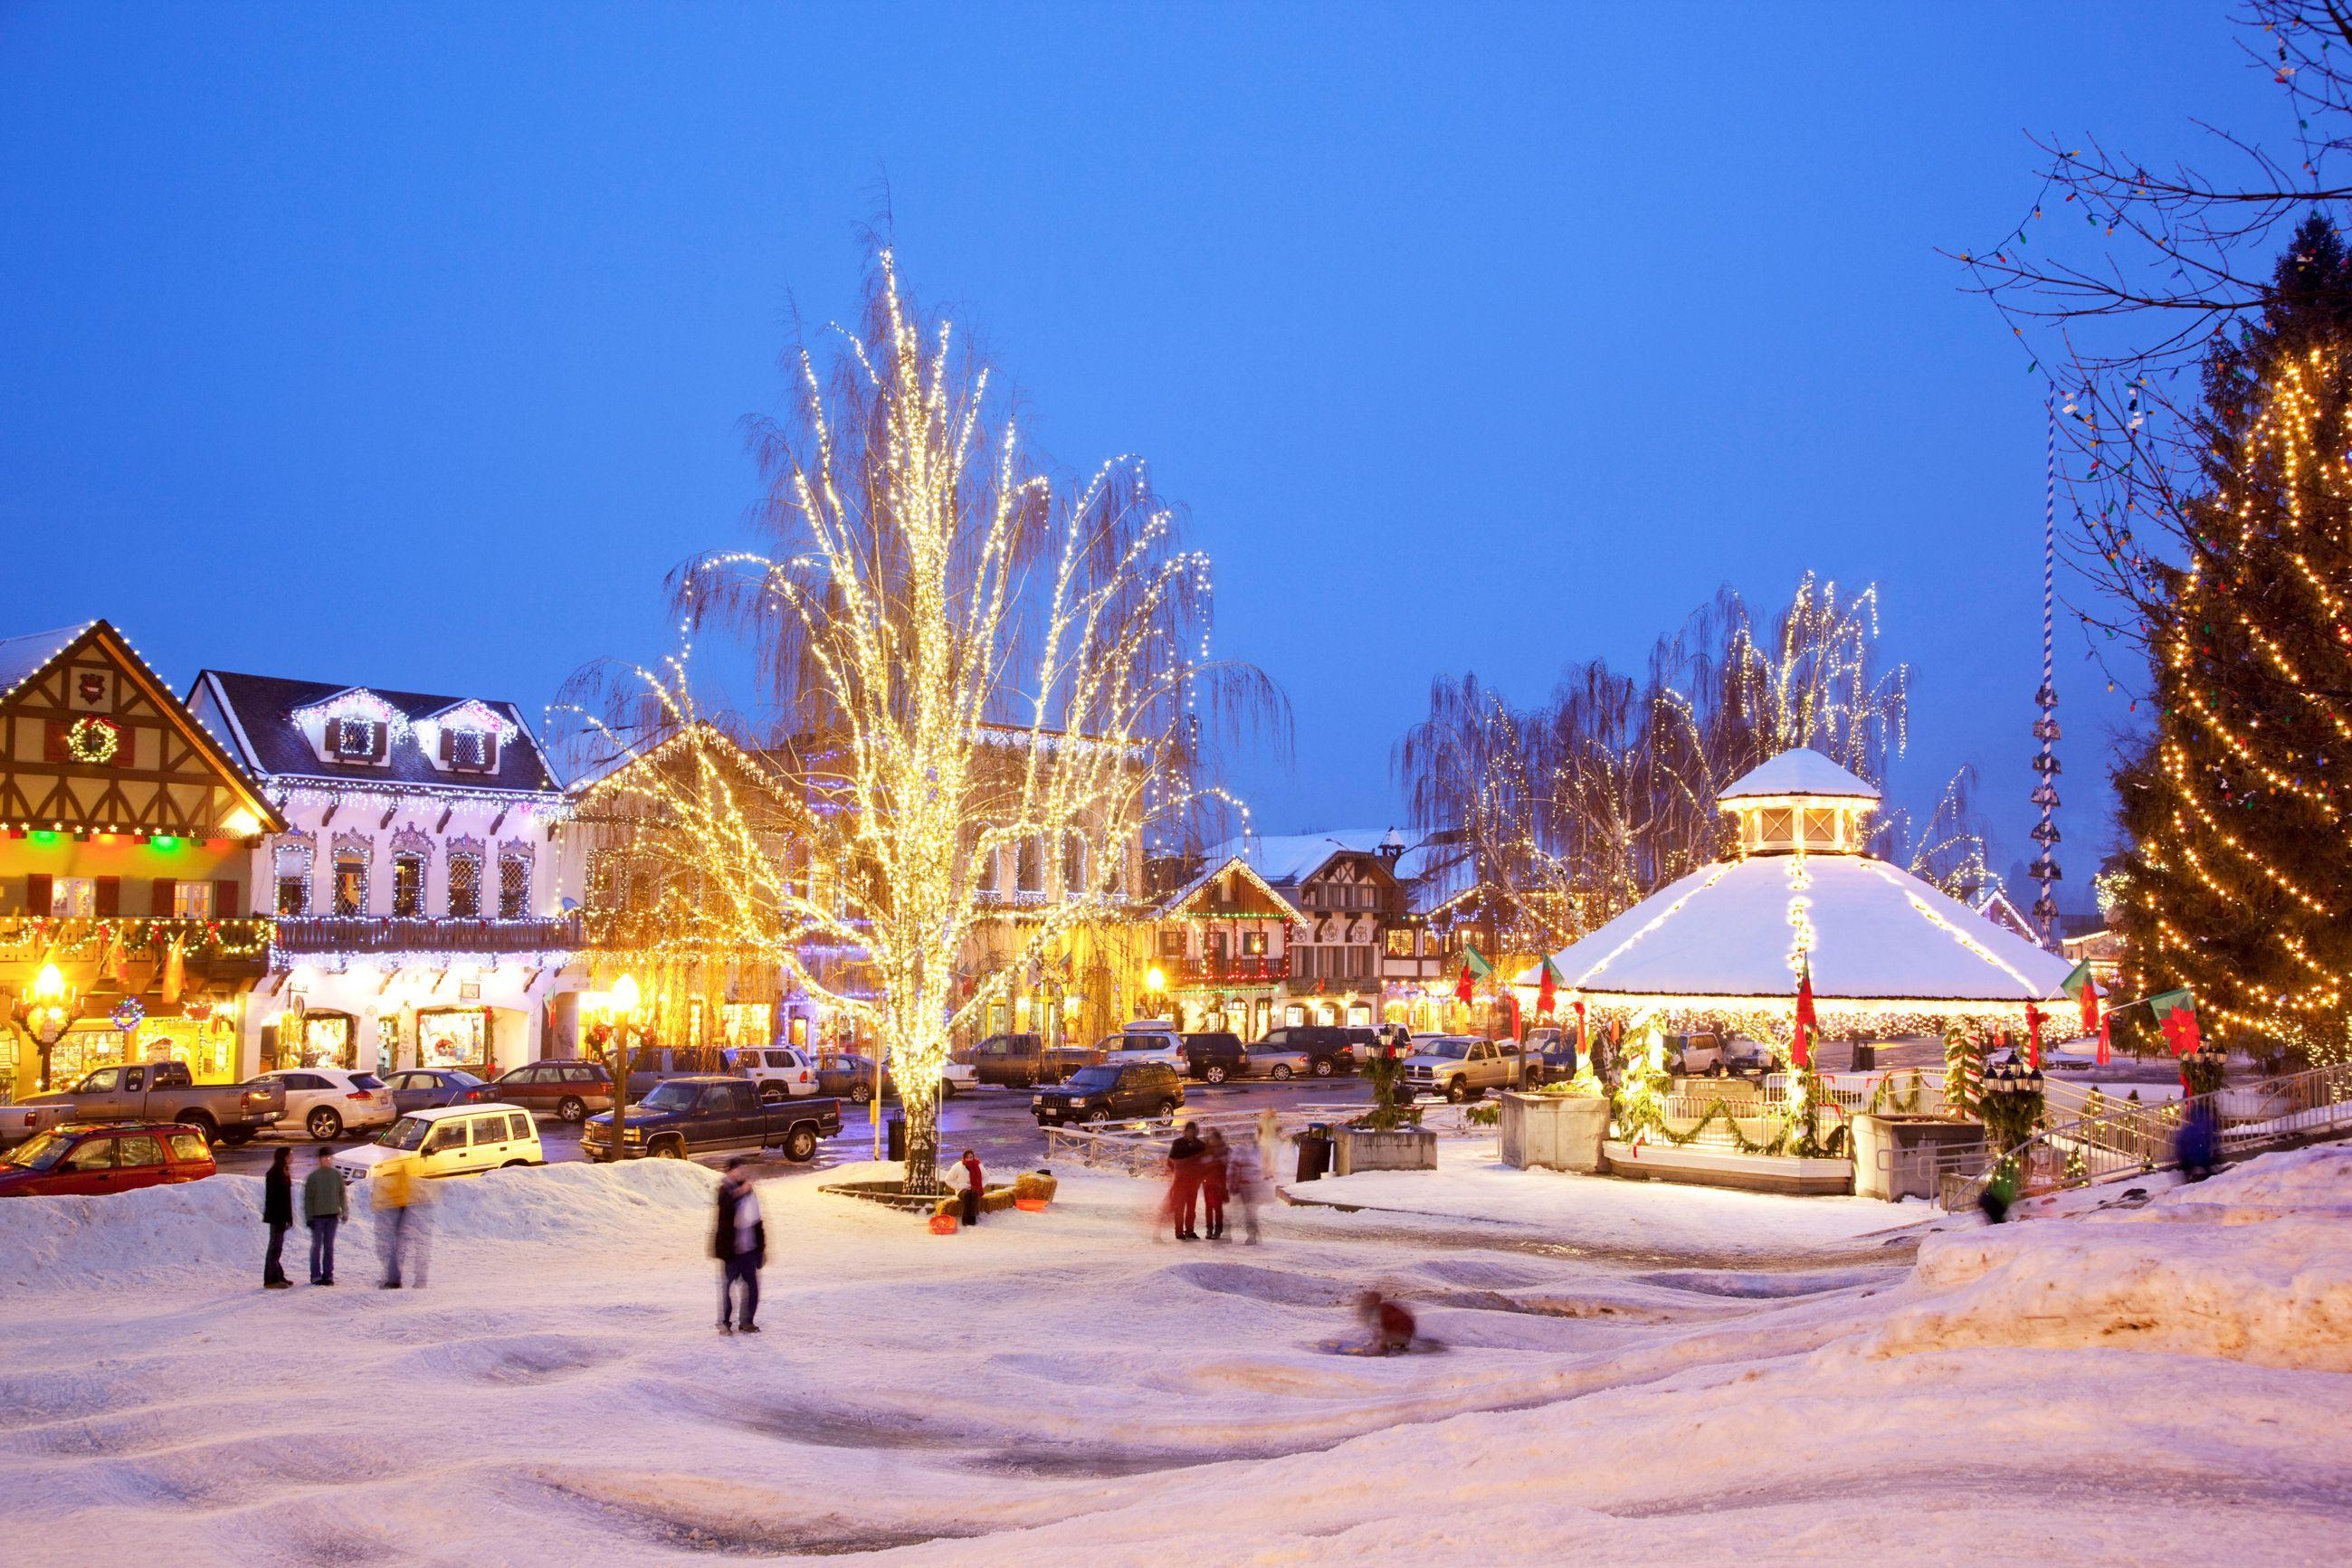 Best Christmas Towns.The Best Christmas Towns To Visit For The Holidays